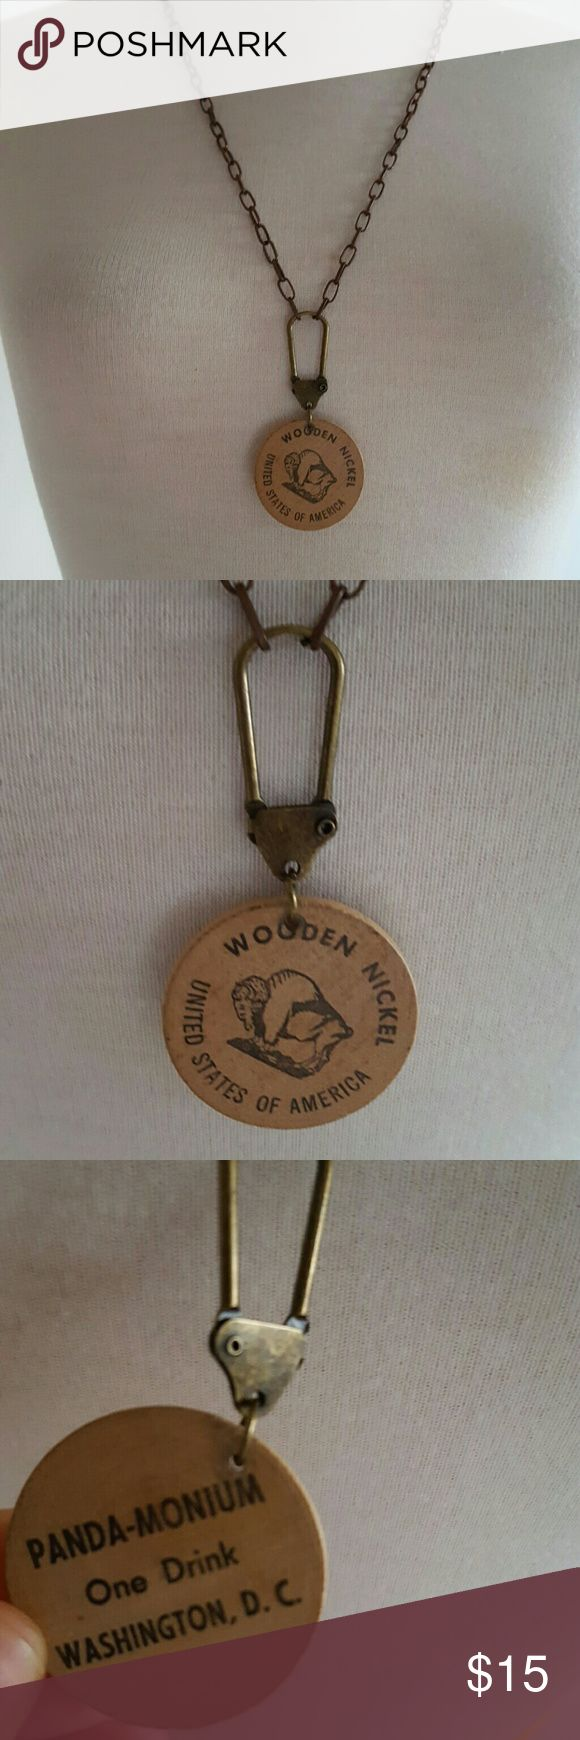 Wooden nickle vintage necklace/ good for 1 drink Actual vintage wooden nickle necklace. Back reads good for one free to! Pretty cool piece. Urban for exposure. Urban Outfitters Jewelry Necklaces